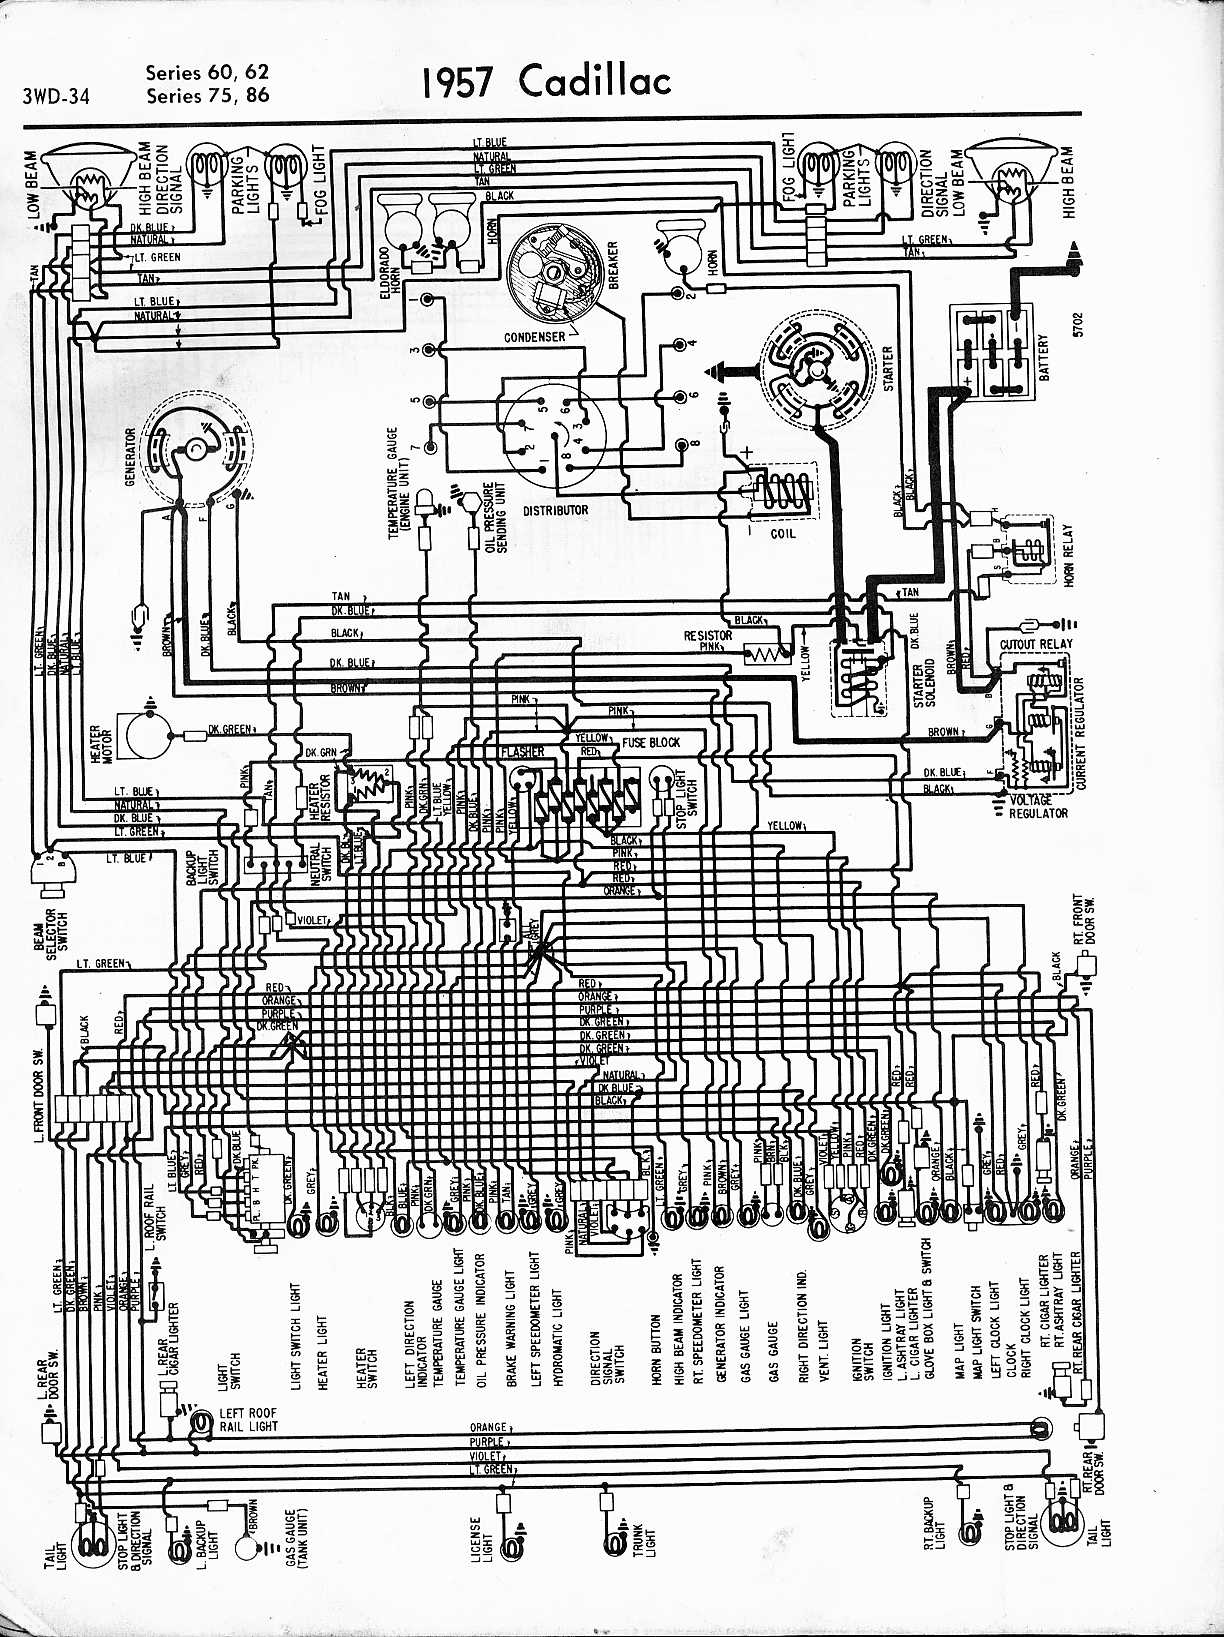 Cadillac 4 5 Engine Wiring Diagram | Online Wiring Diagram on 100 amp service panel diagram, general electric breaker box diagram, shunt trip coil diagram, breaker box installation, electrical sub panel diagram, 200 amp breaker box diagram, breaker panel, home electrical diagram, electrical plug diagram, fuse box diagram, circuit diagram, 220v sub panel diagram, 3 phase breaker box diagram, breaker box block diagram, gfci diagram, 100 amp breaker box diagram, breaker schematic, gfi breaker diagram, breaker box layout, residential breaker box diagram,